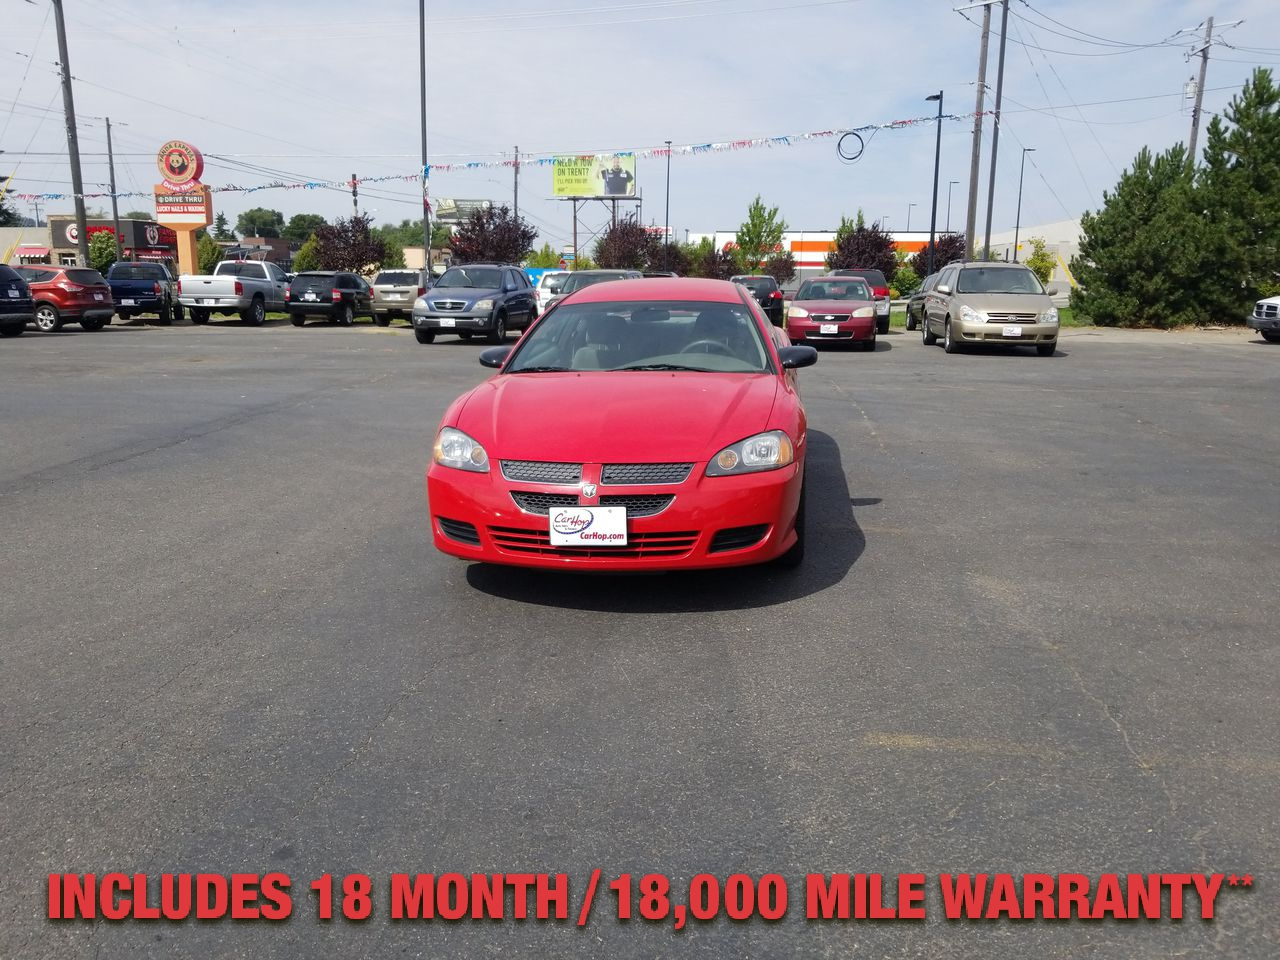 Pre-Owned 2005 DODGE STRATUS SXT Coupe